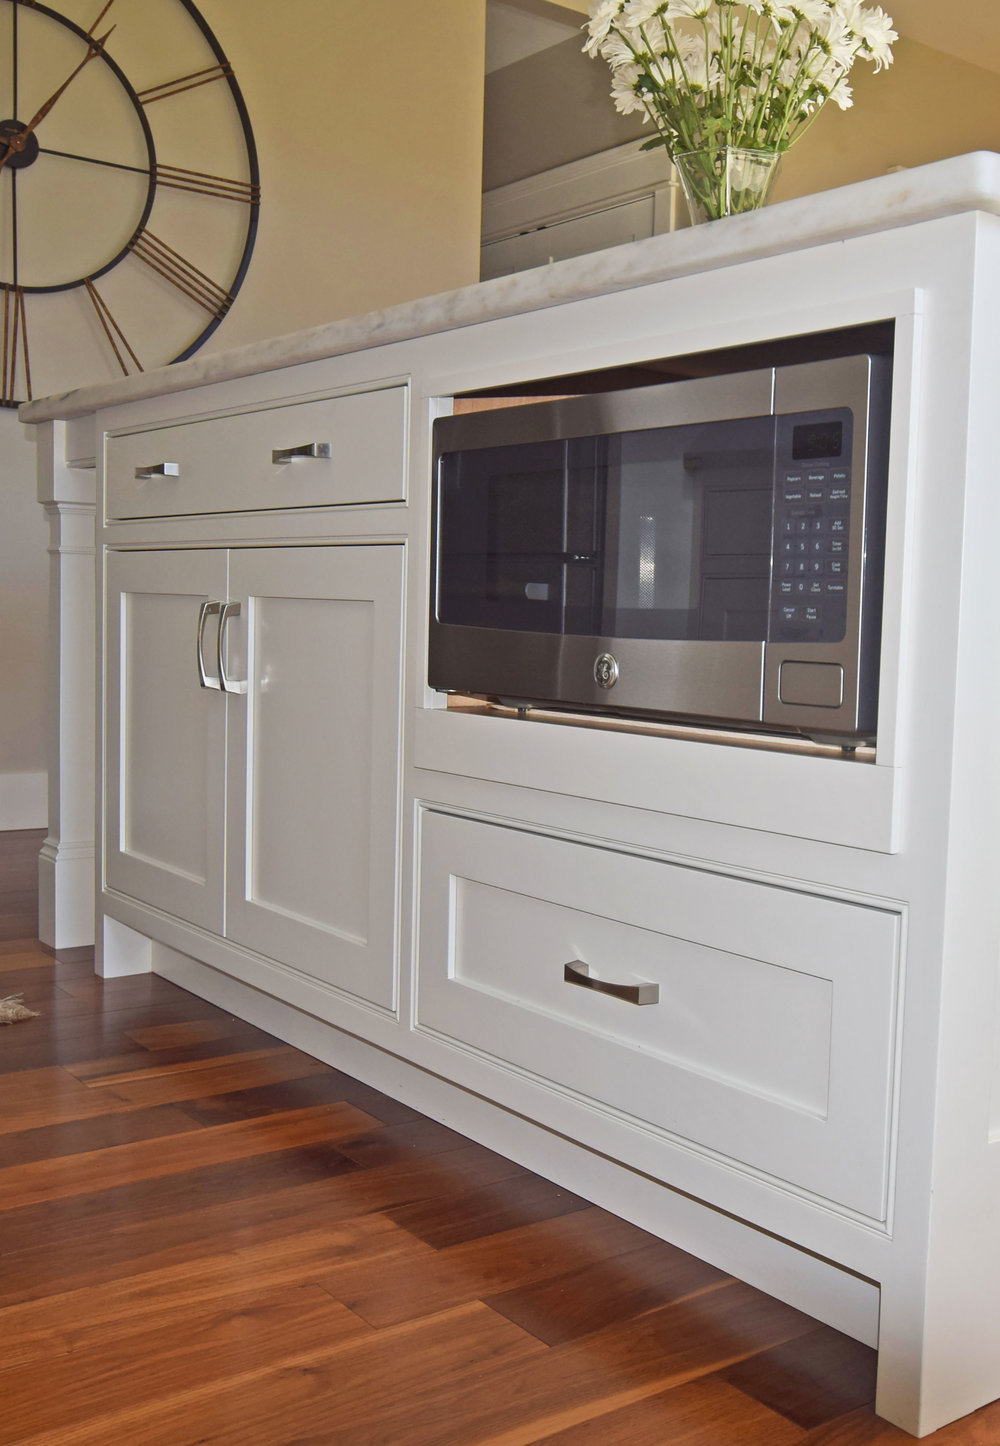 Bright White Kitchen - Microwave Enclosure